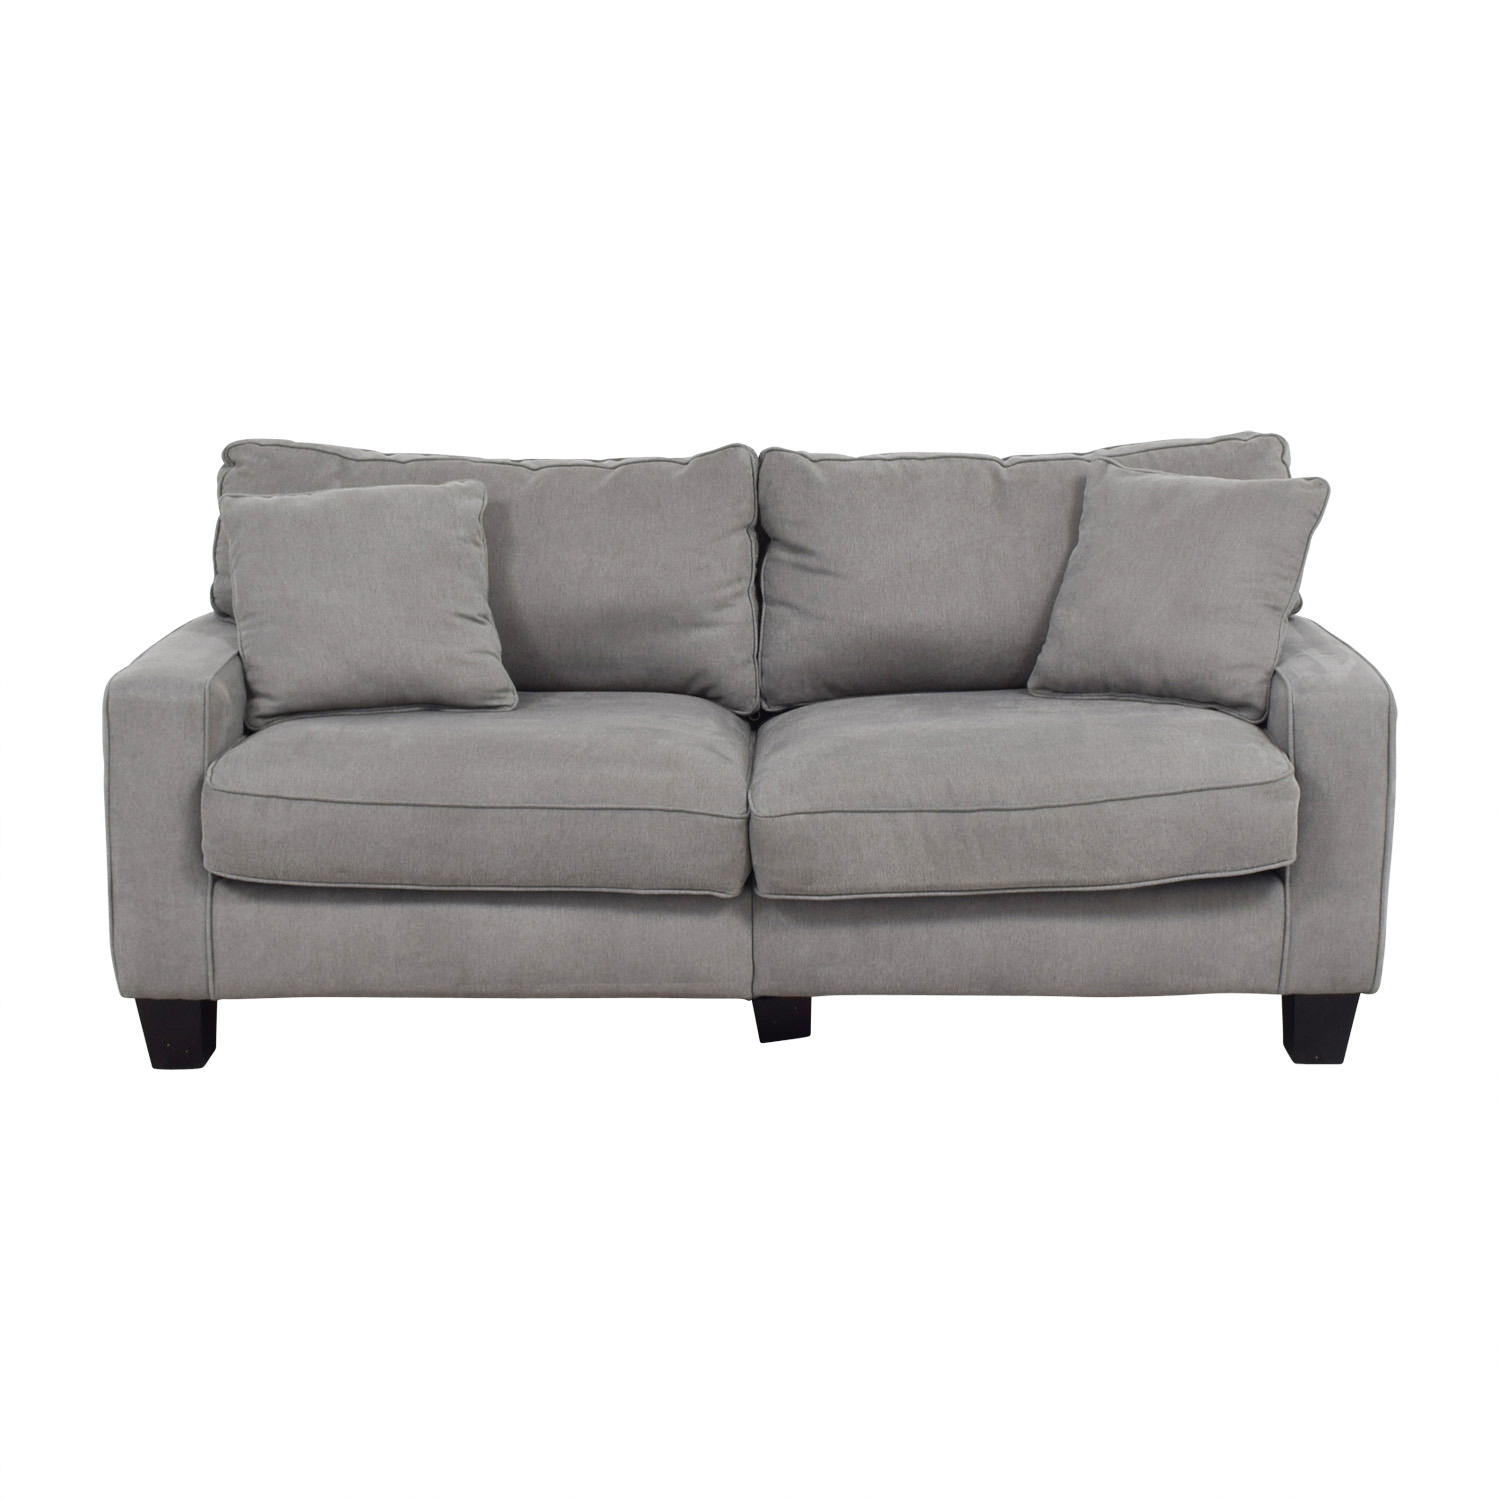 Serta Serta Grey Loveseat with Toss Pillows discount